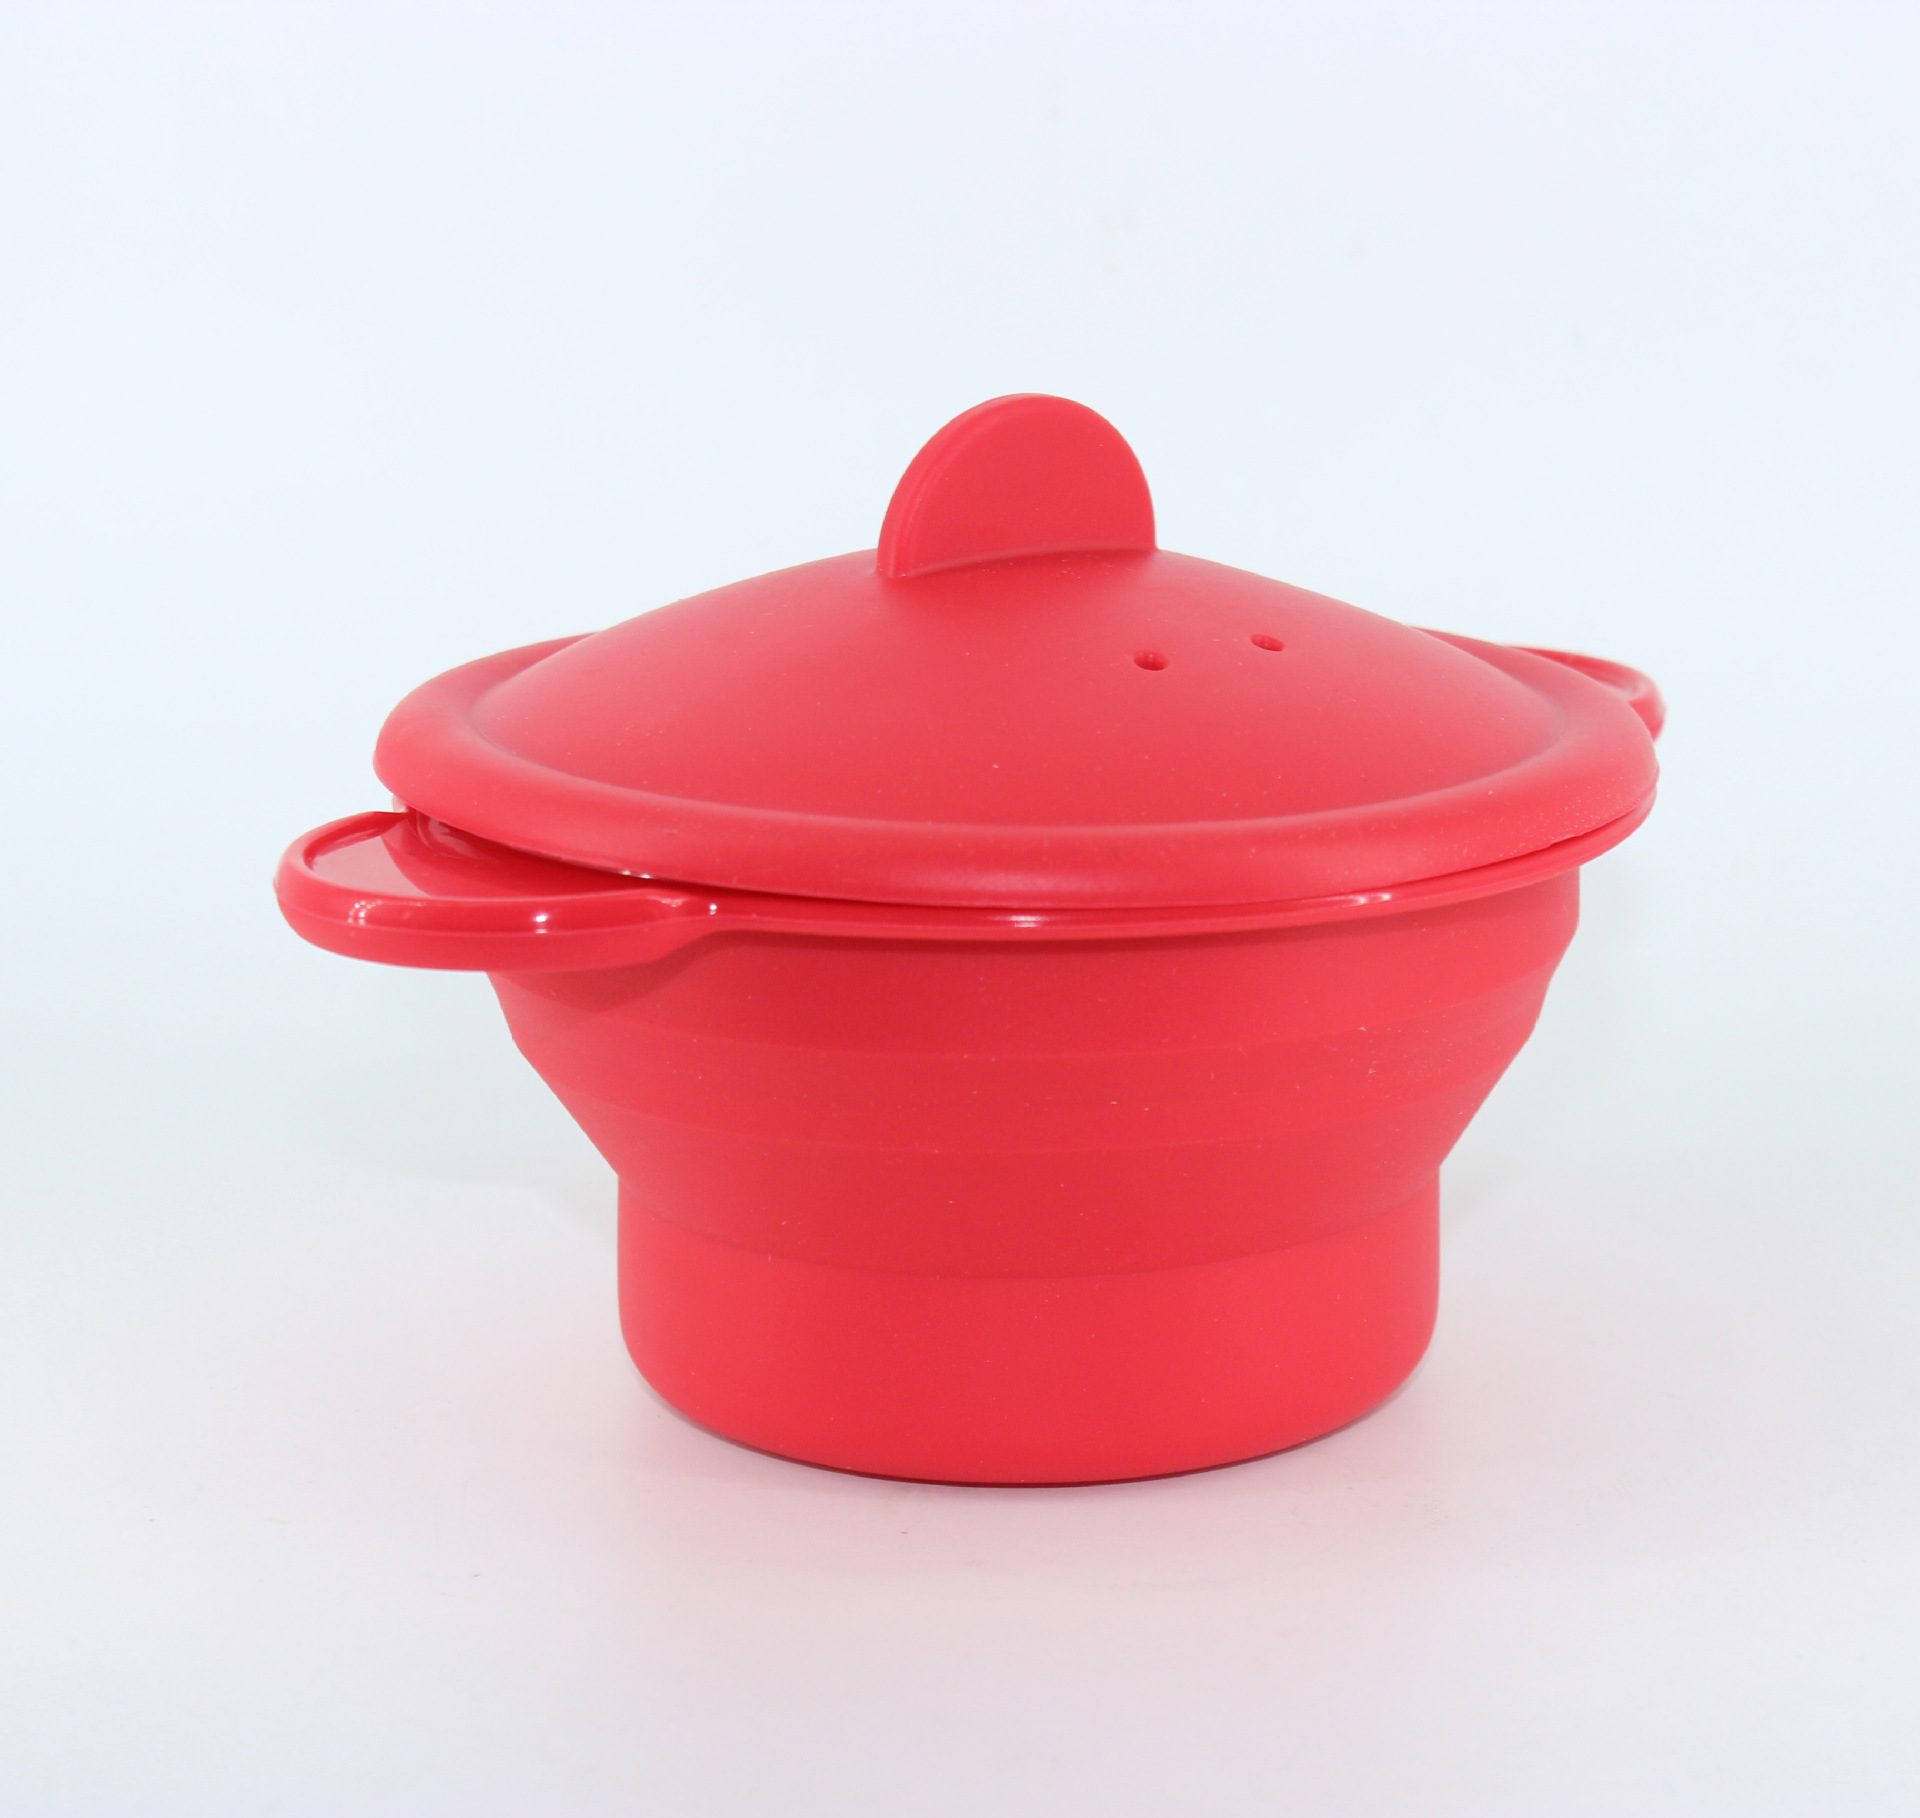 Kitchenware Red Silicone Foldable Retractable Steam Pot With Cover Double Handle Practical Cooking Steamer